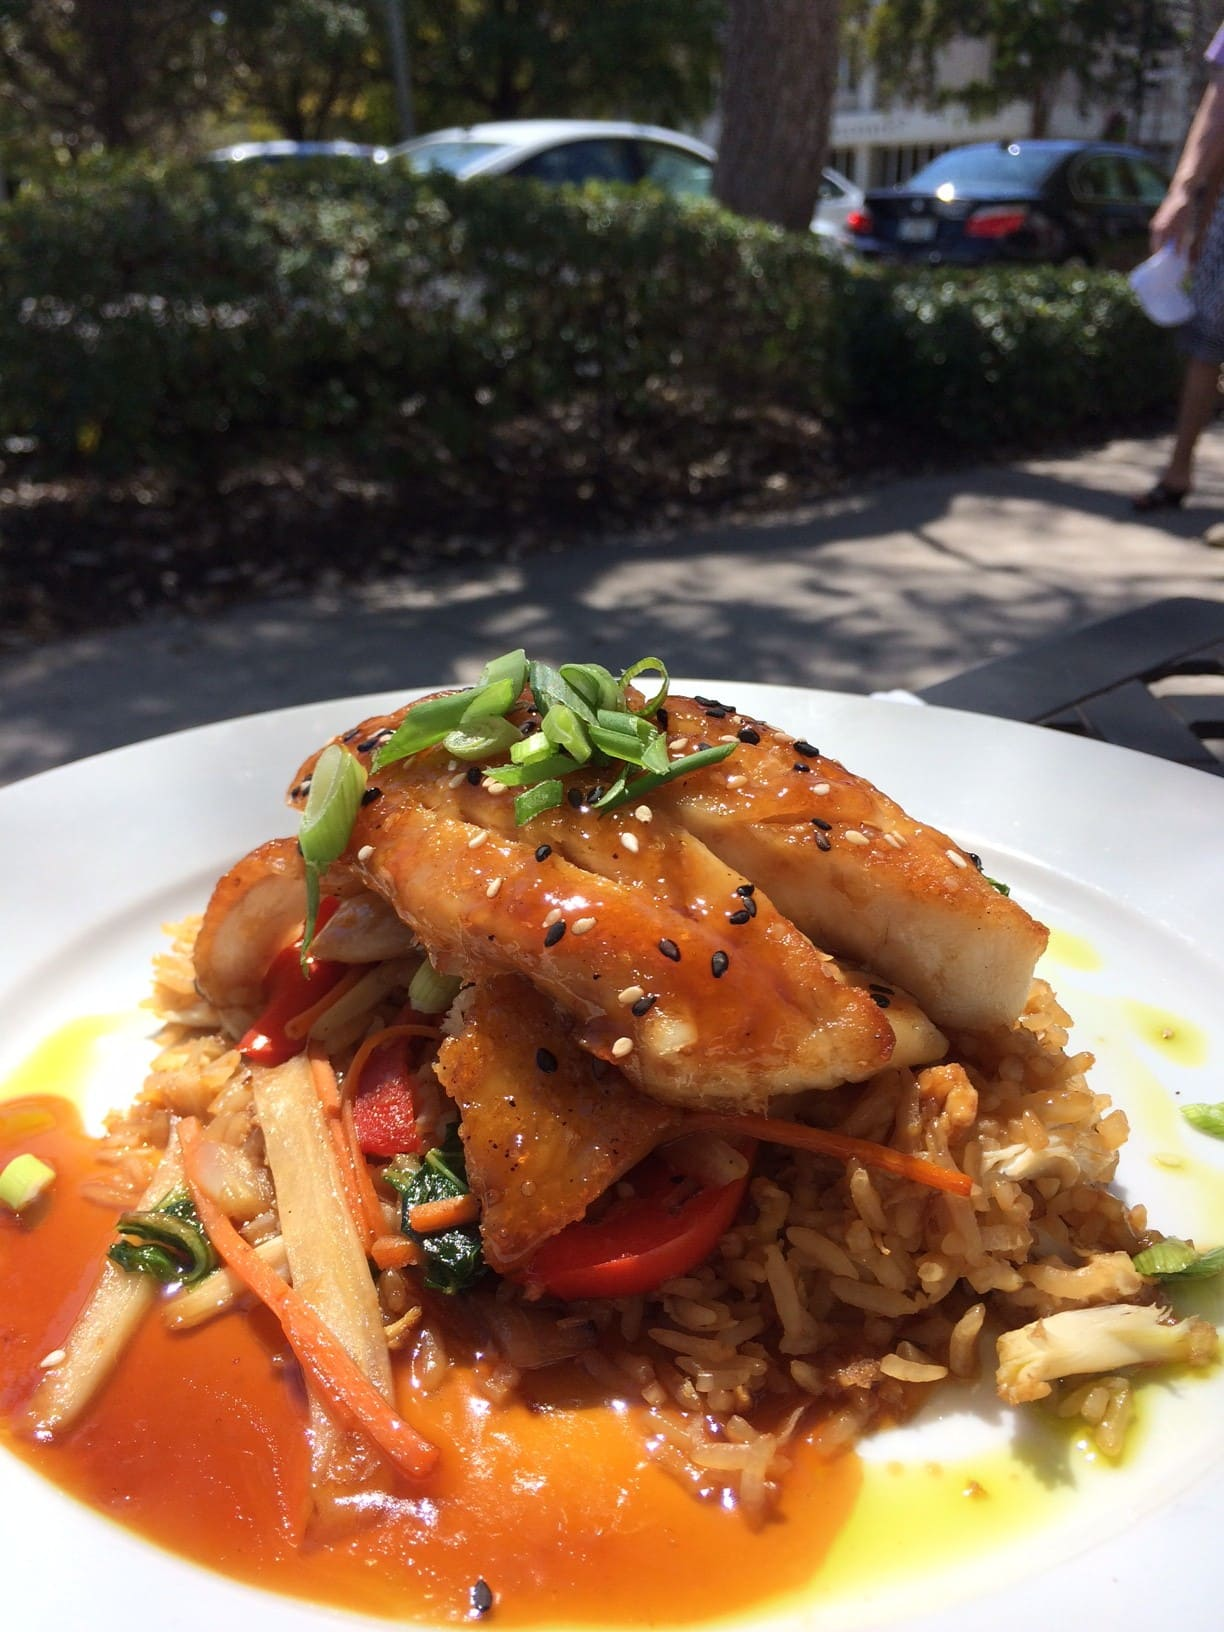 Great seafood restaurants in naples fl no plate like home for Fish restaurant naples